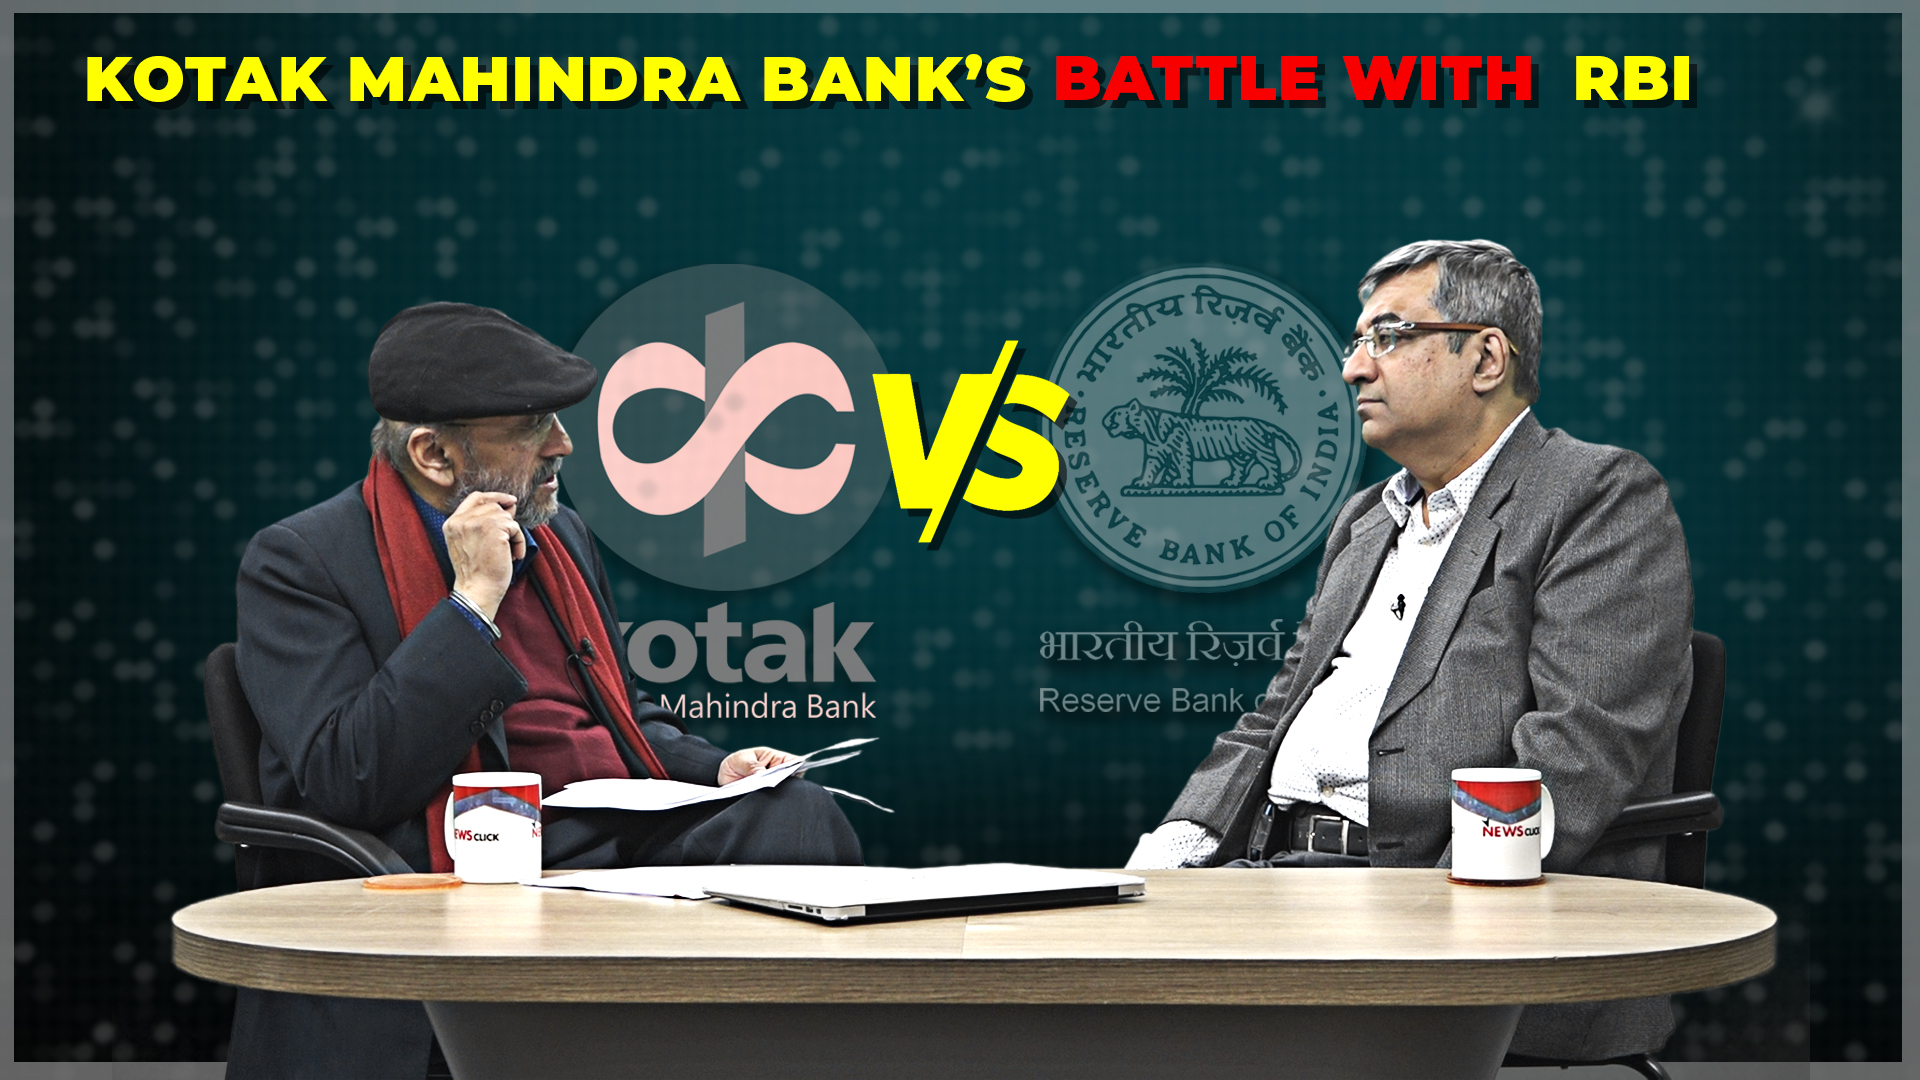 Kotak Mahindra Bank's Battle with RBI